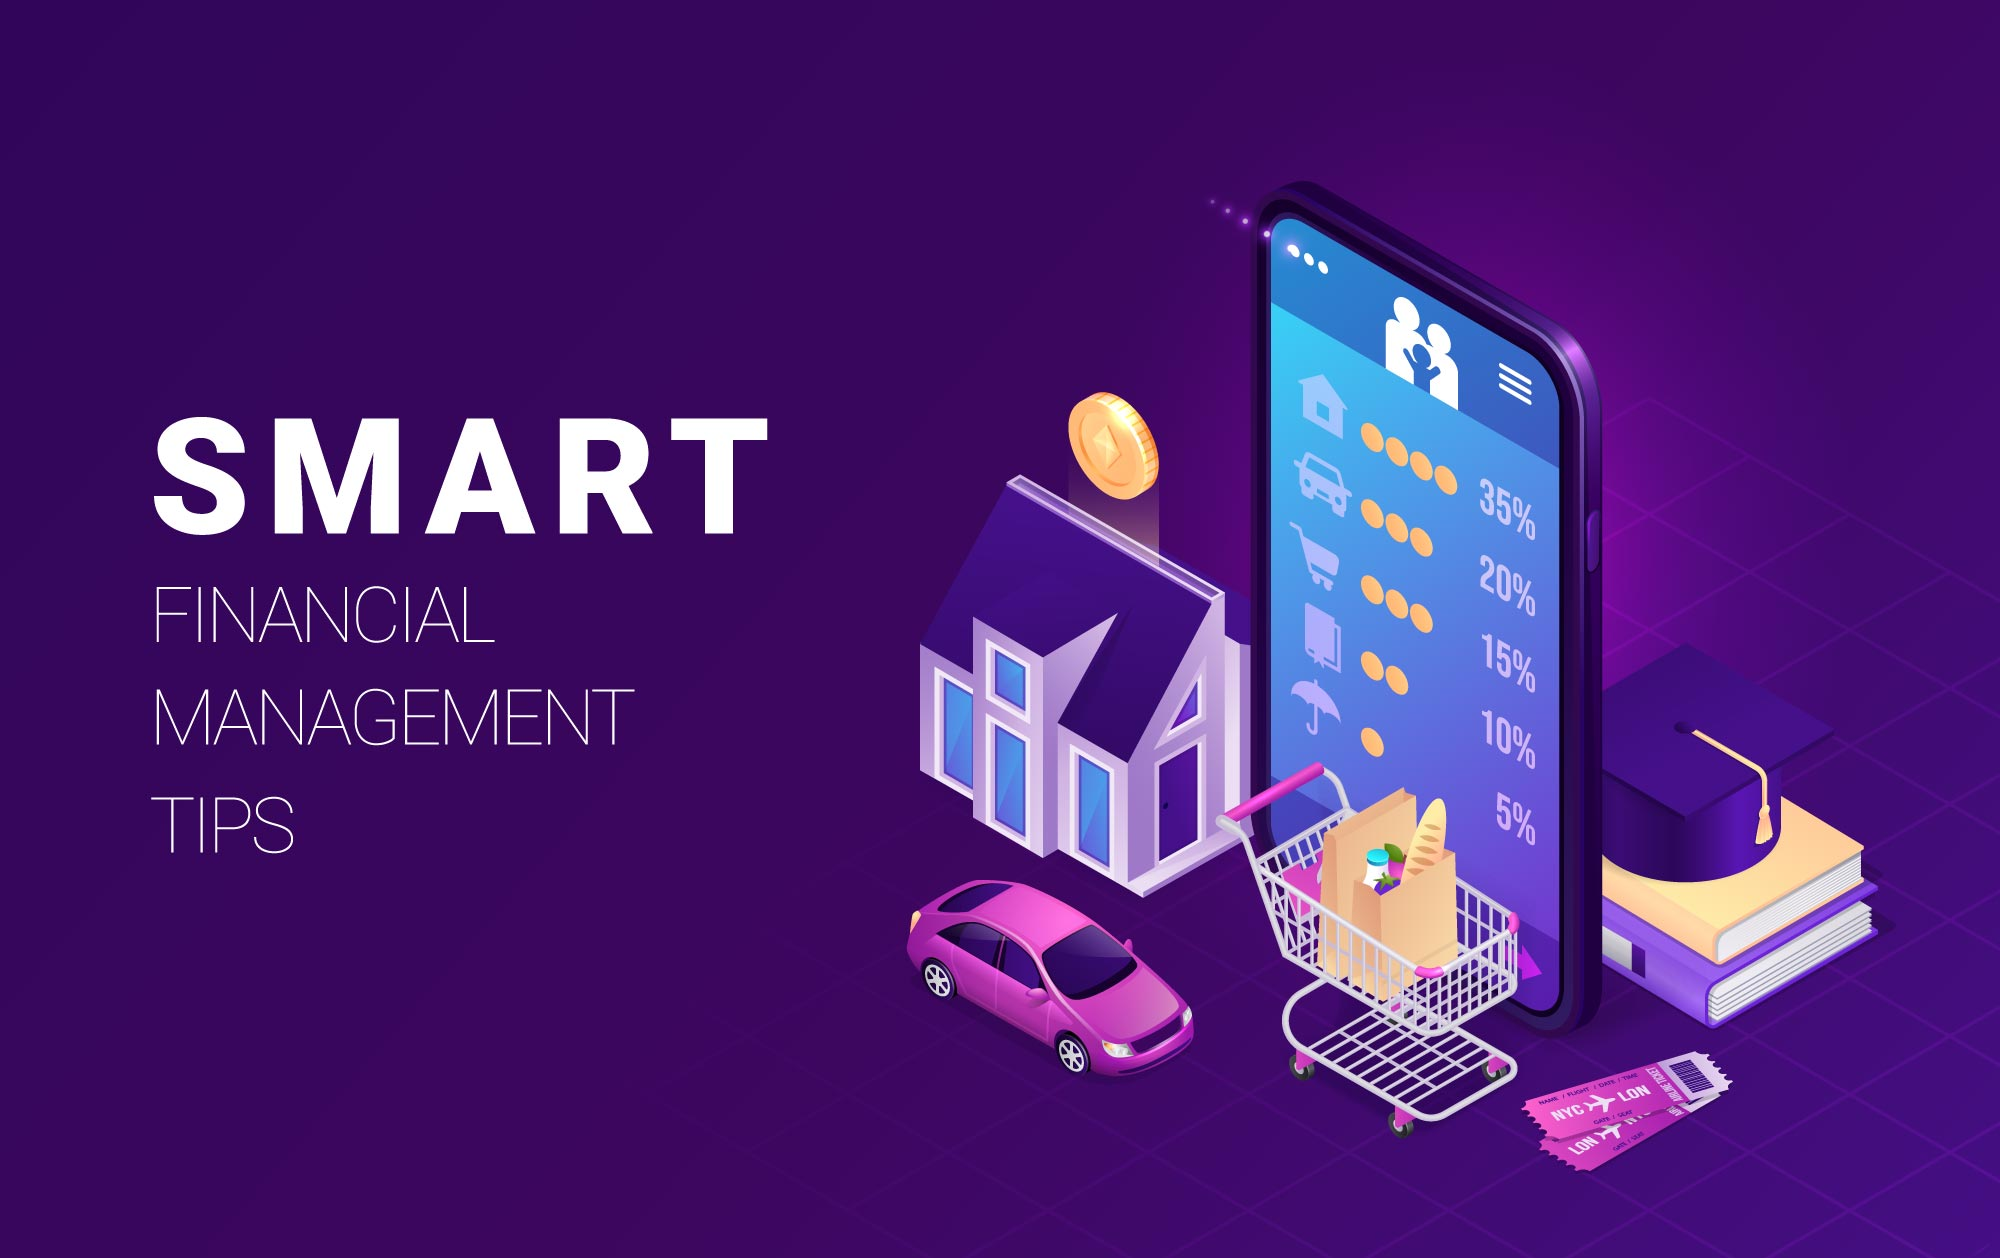 Scale up your Monetary affairs with these Smart Financial Management Tips